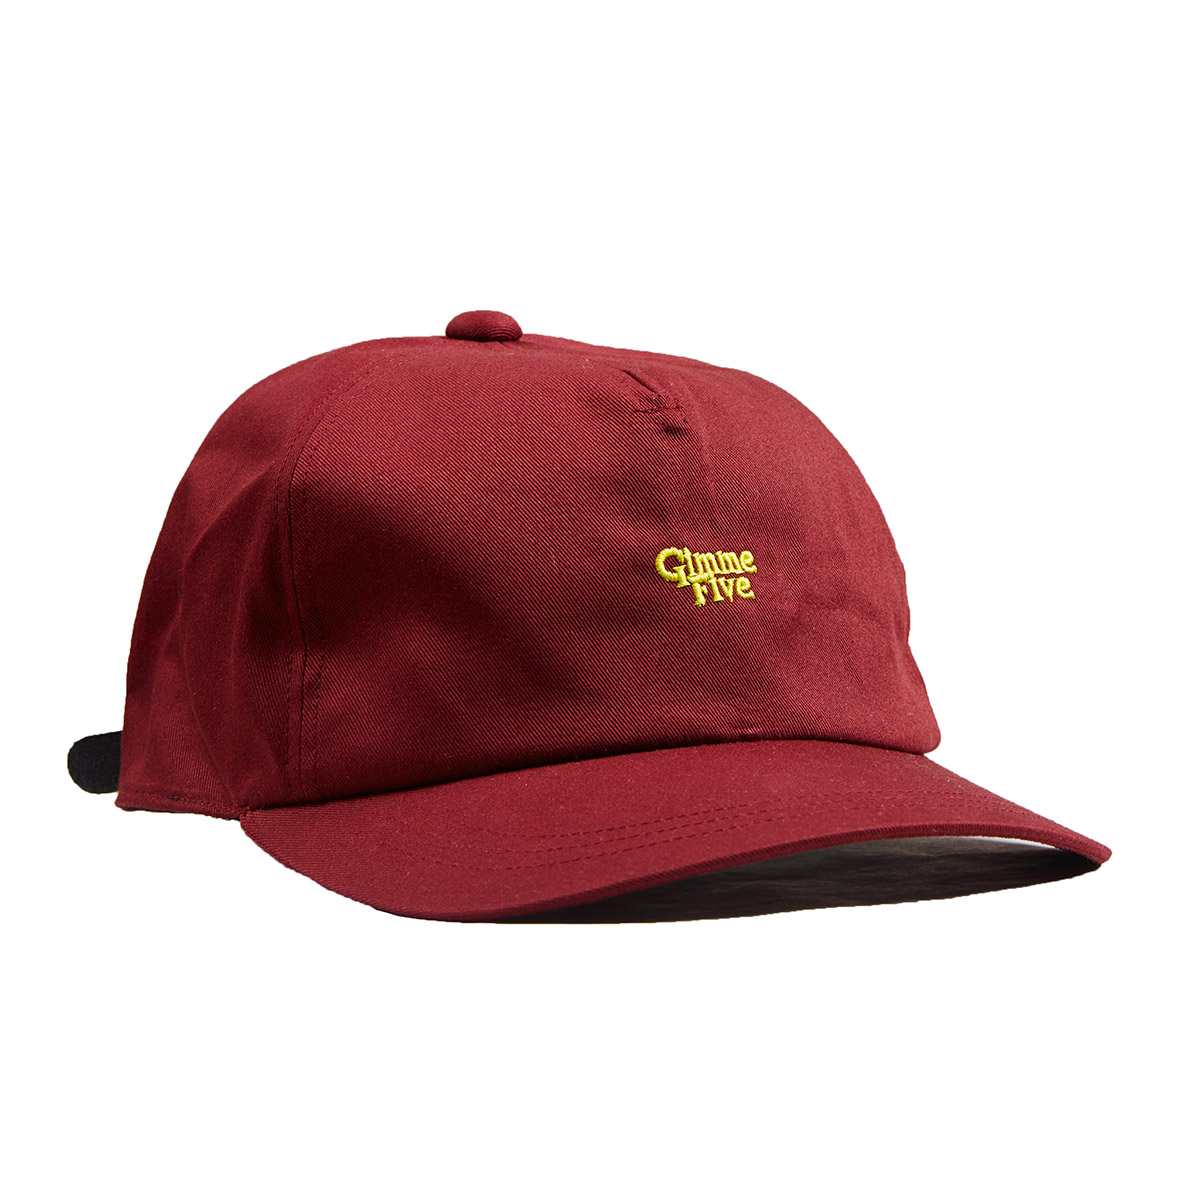 Gimme_5_japan_CAP-Red-front.jpg